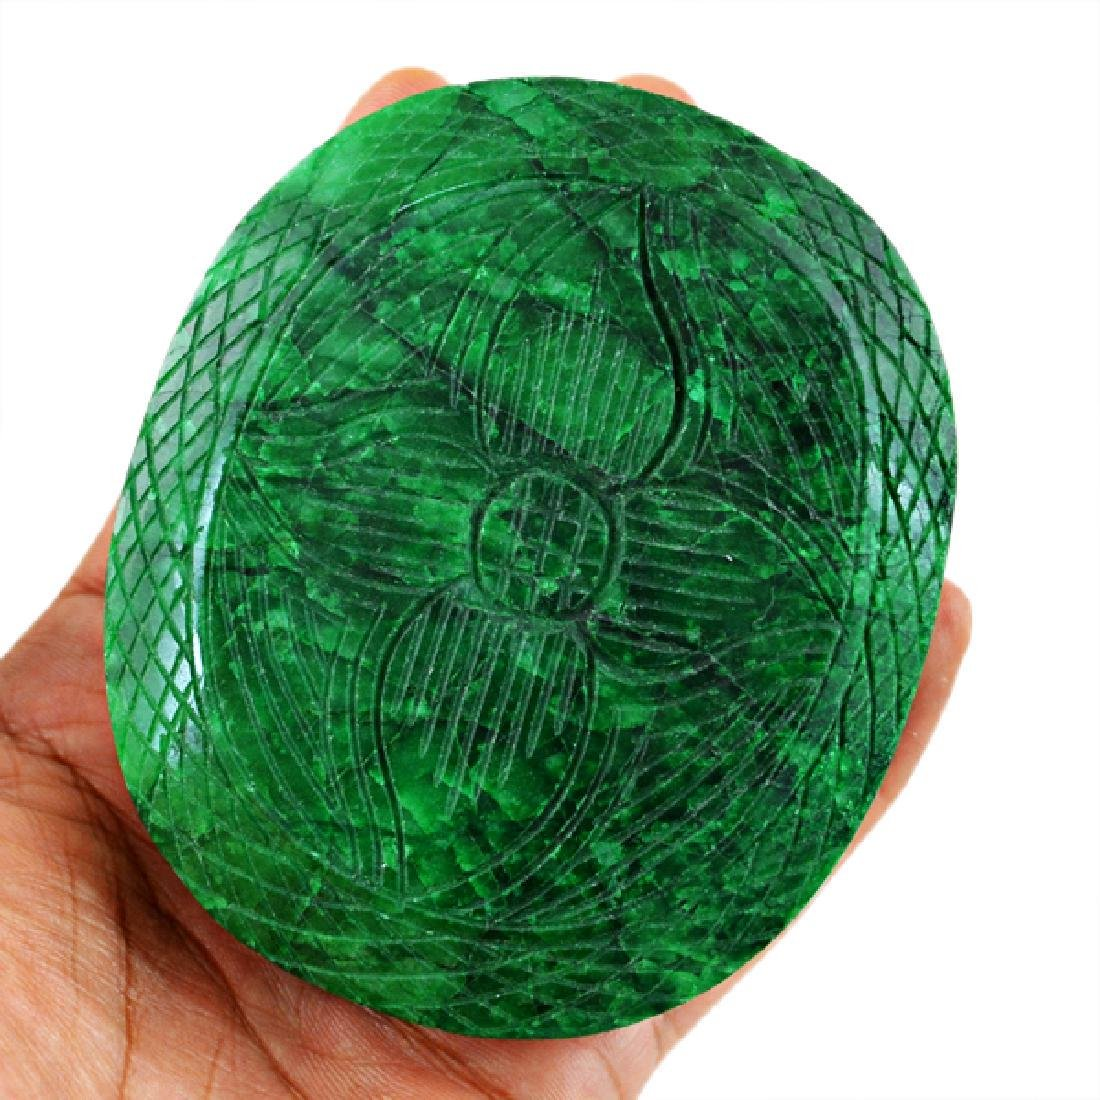 Green Emerald Carved Cabochon